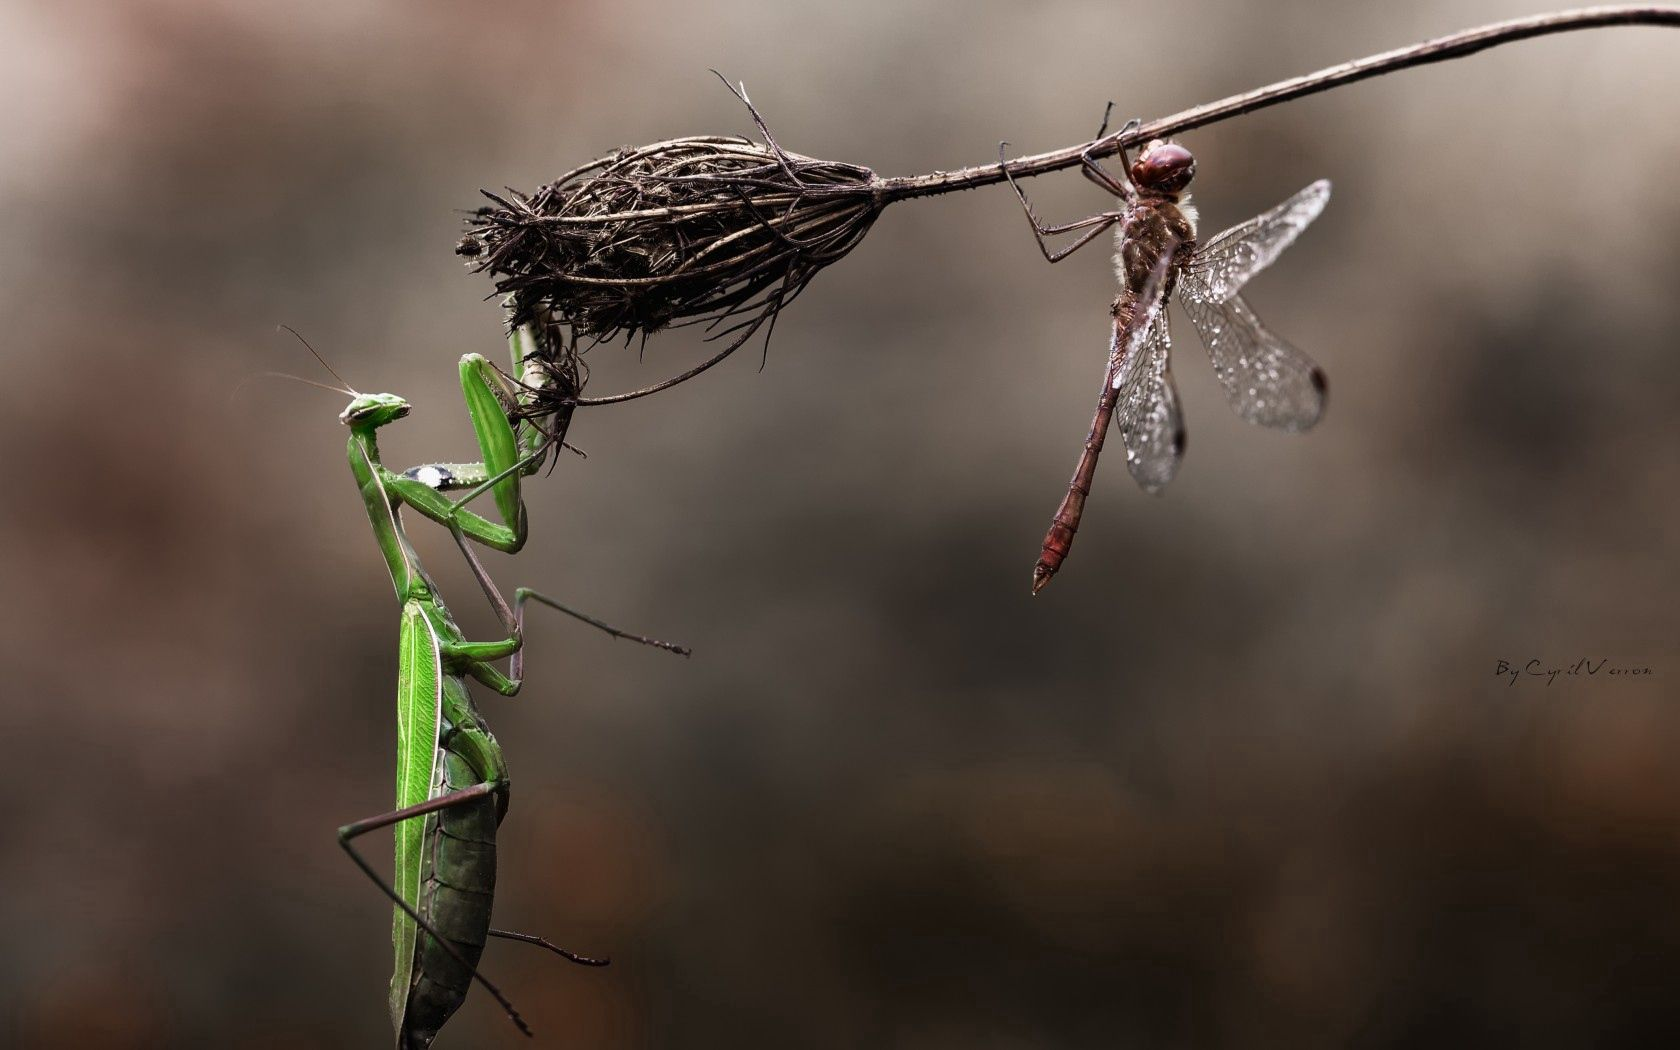 153378 download wallpaper Animals, Mantis, Dragonfly, Blade Of Grass, Blade, Macro, Flower, Dry, Danger, Insects screensavers and pictures for free